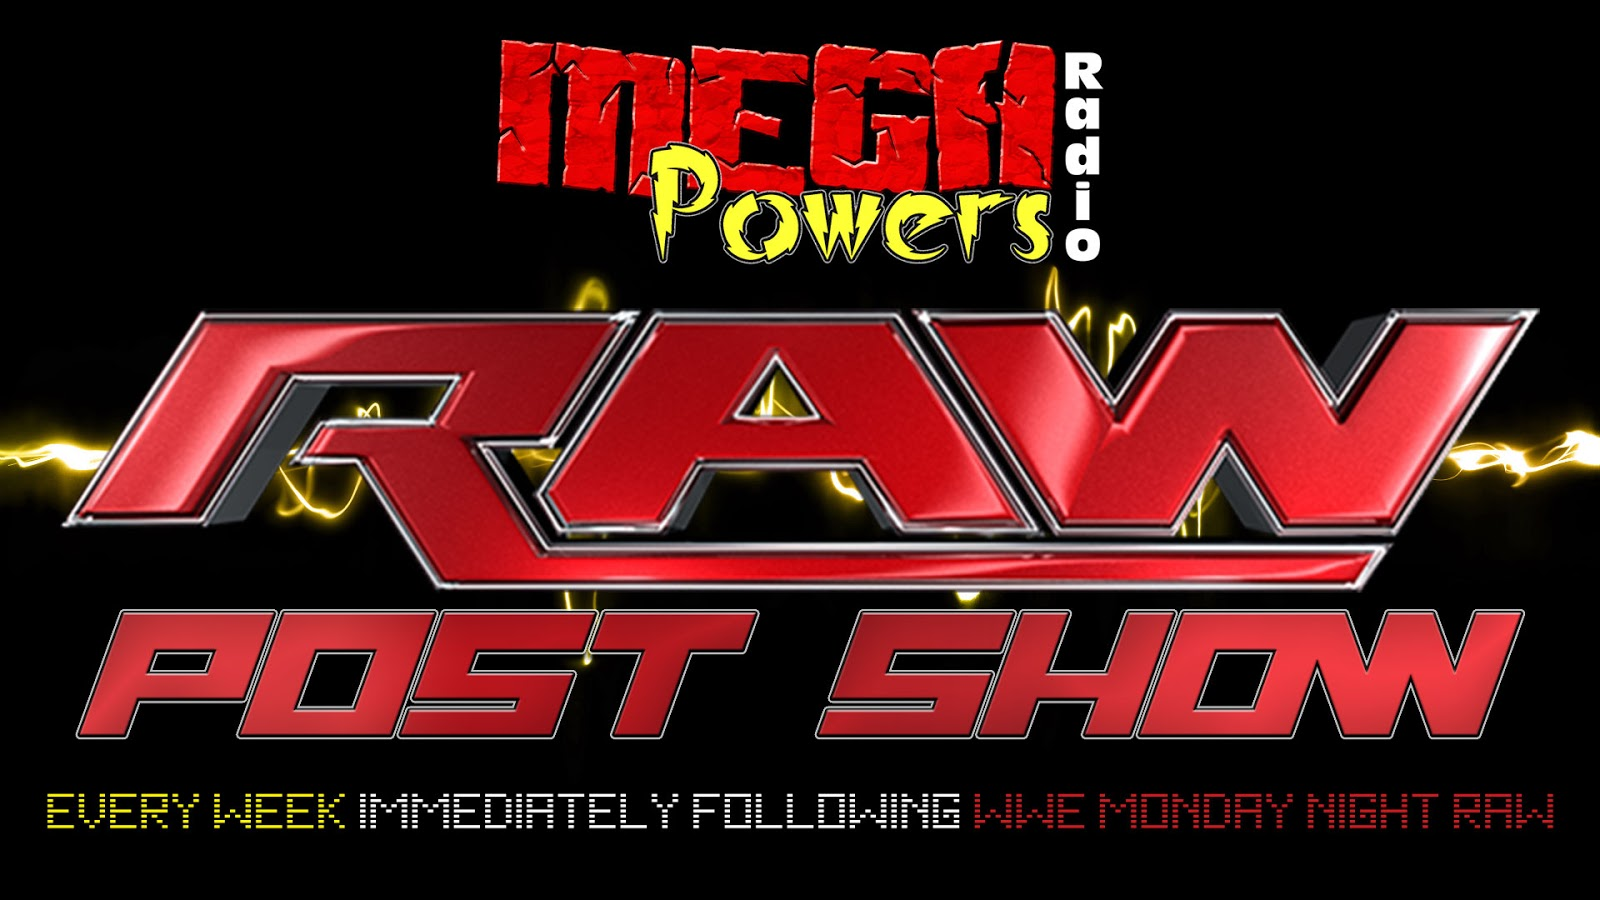 March 14, 2016 Monday Night Raw Full Show Download Stream